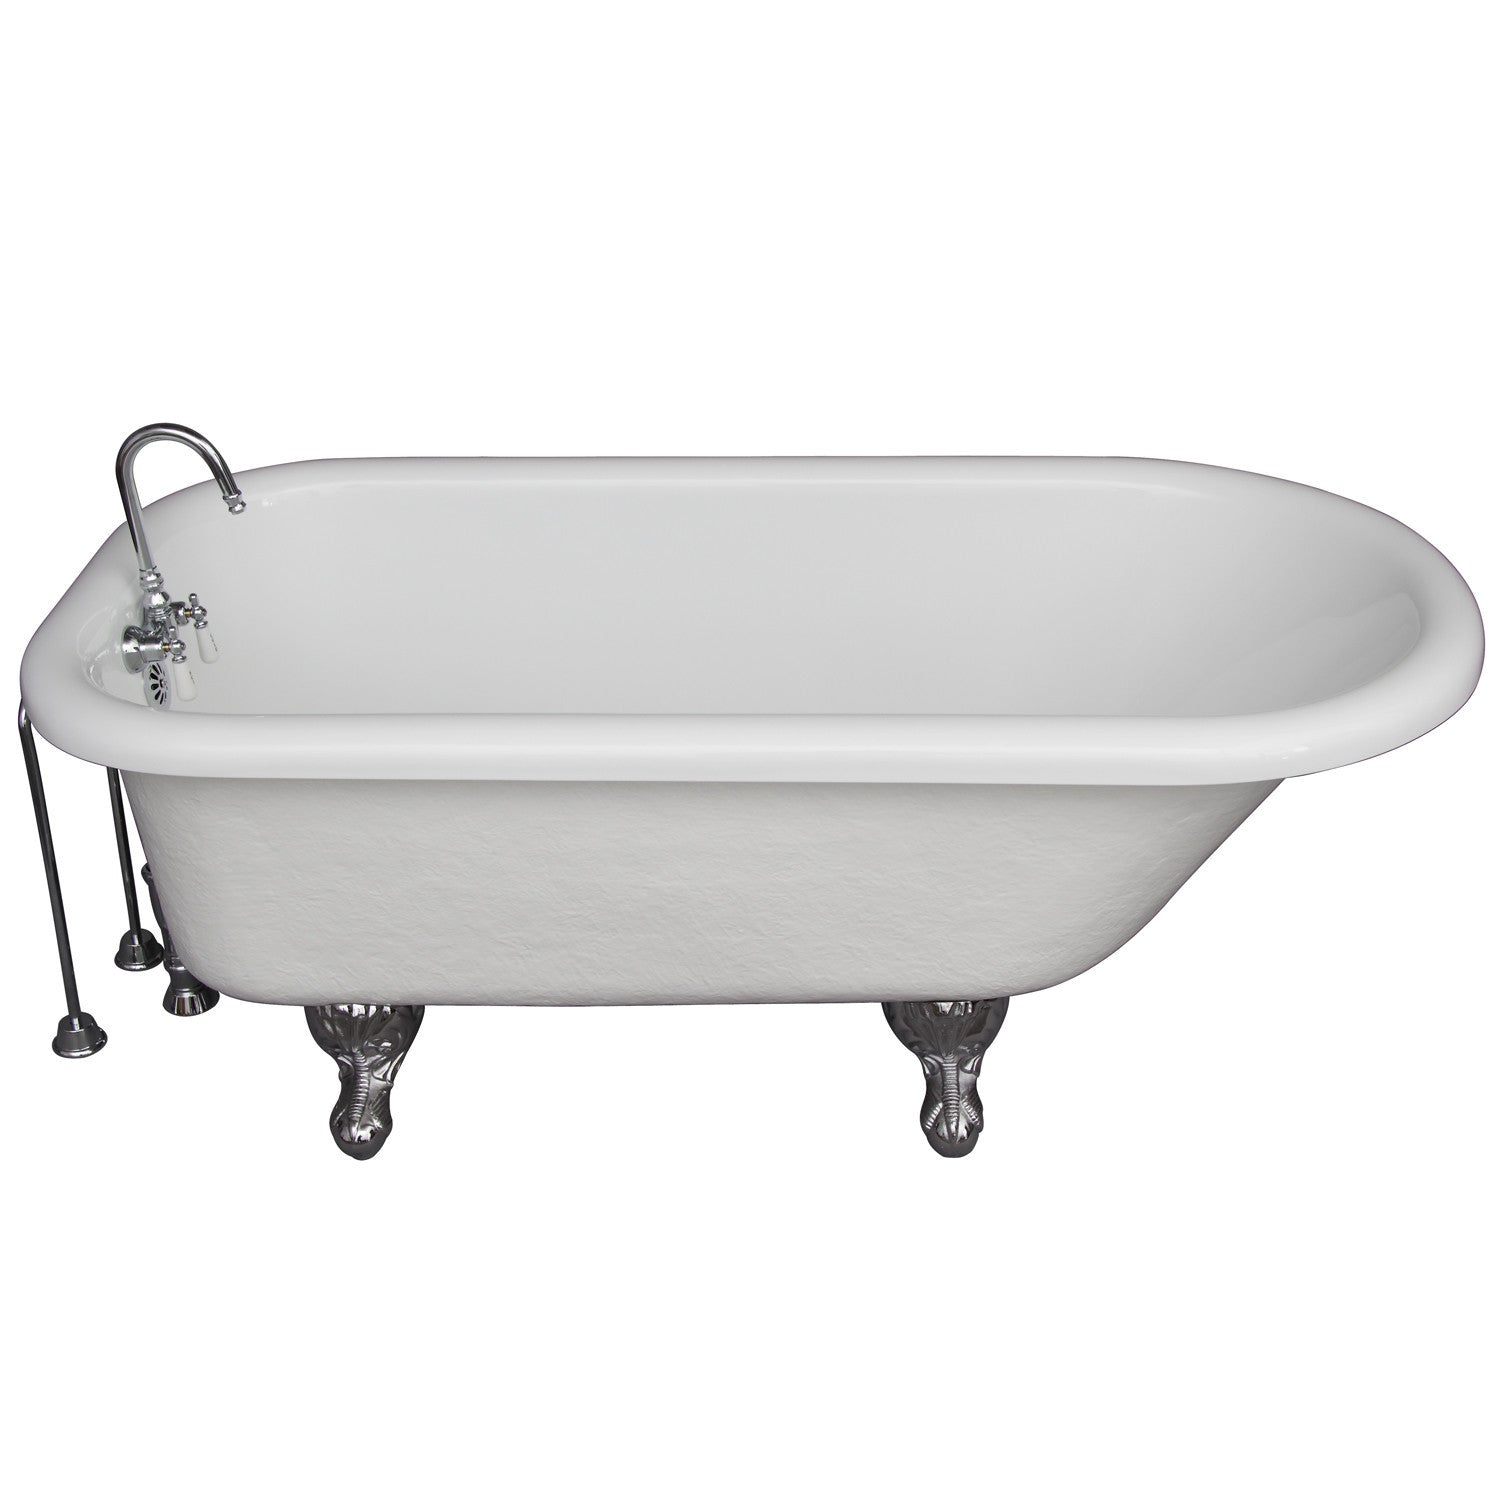 Barclay TKATR60-WCP9 Andover 60″ Acrylic Roll Top Tub Kit in White ...